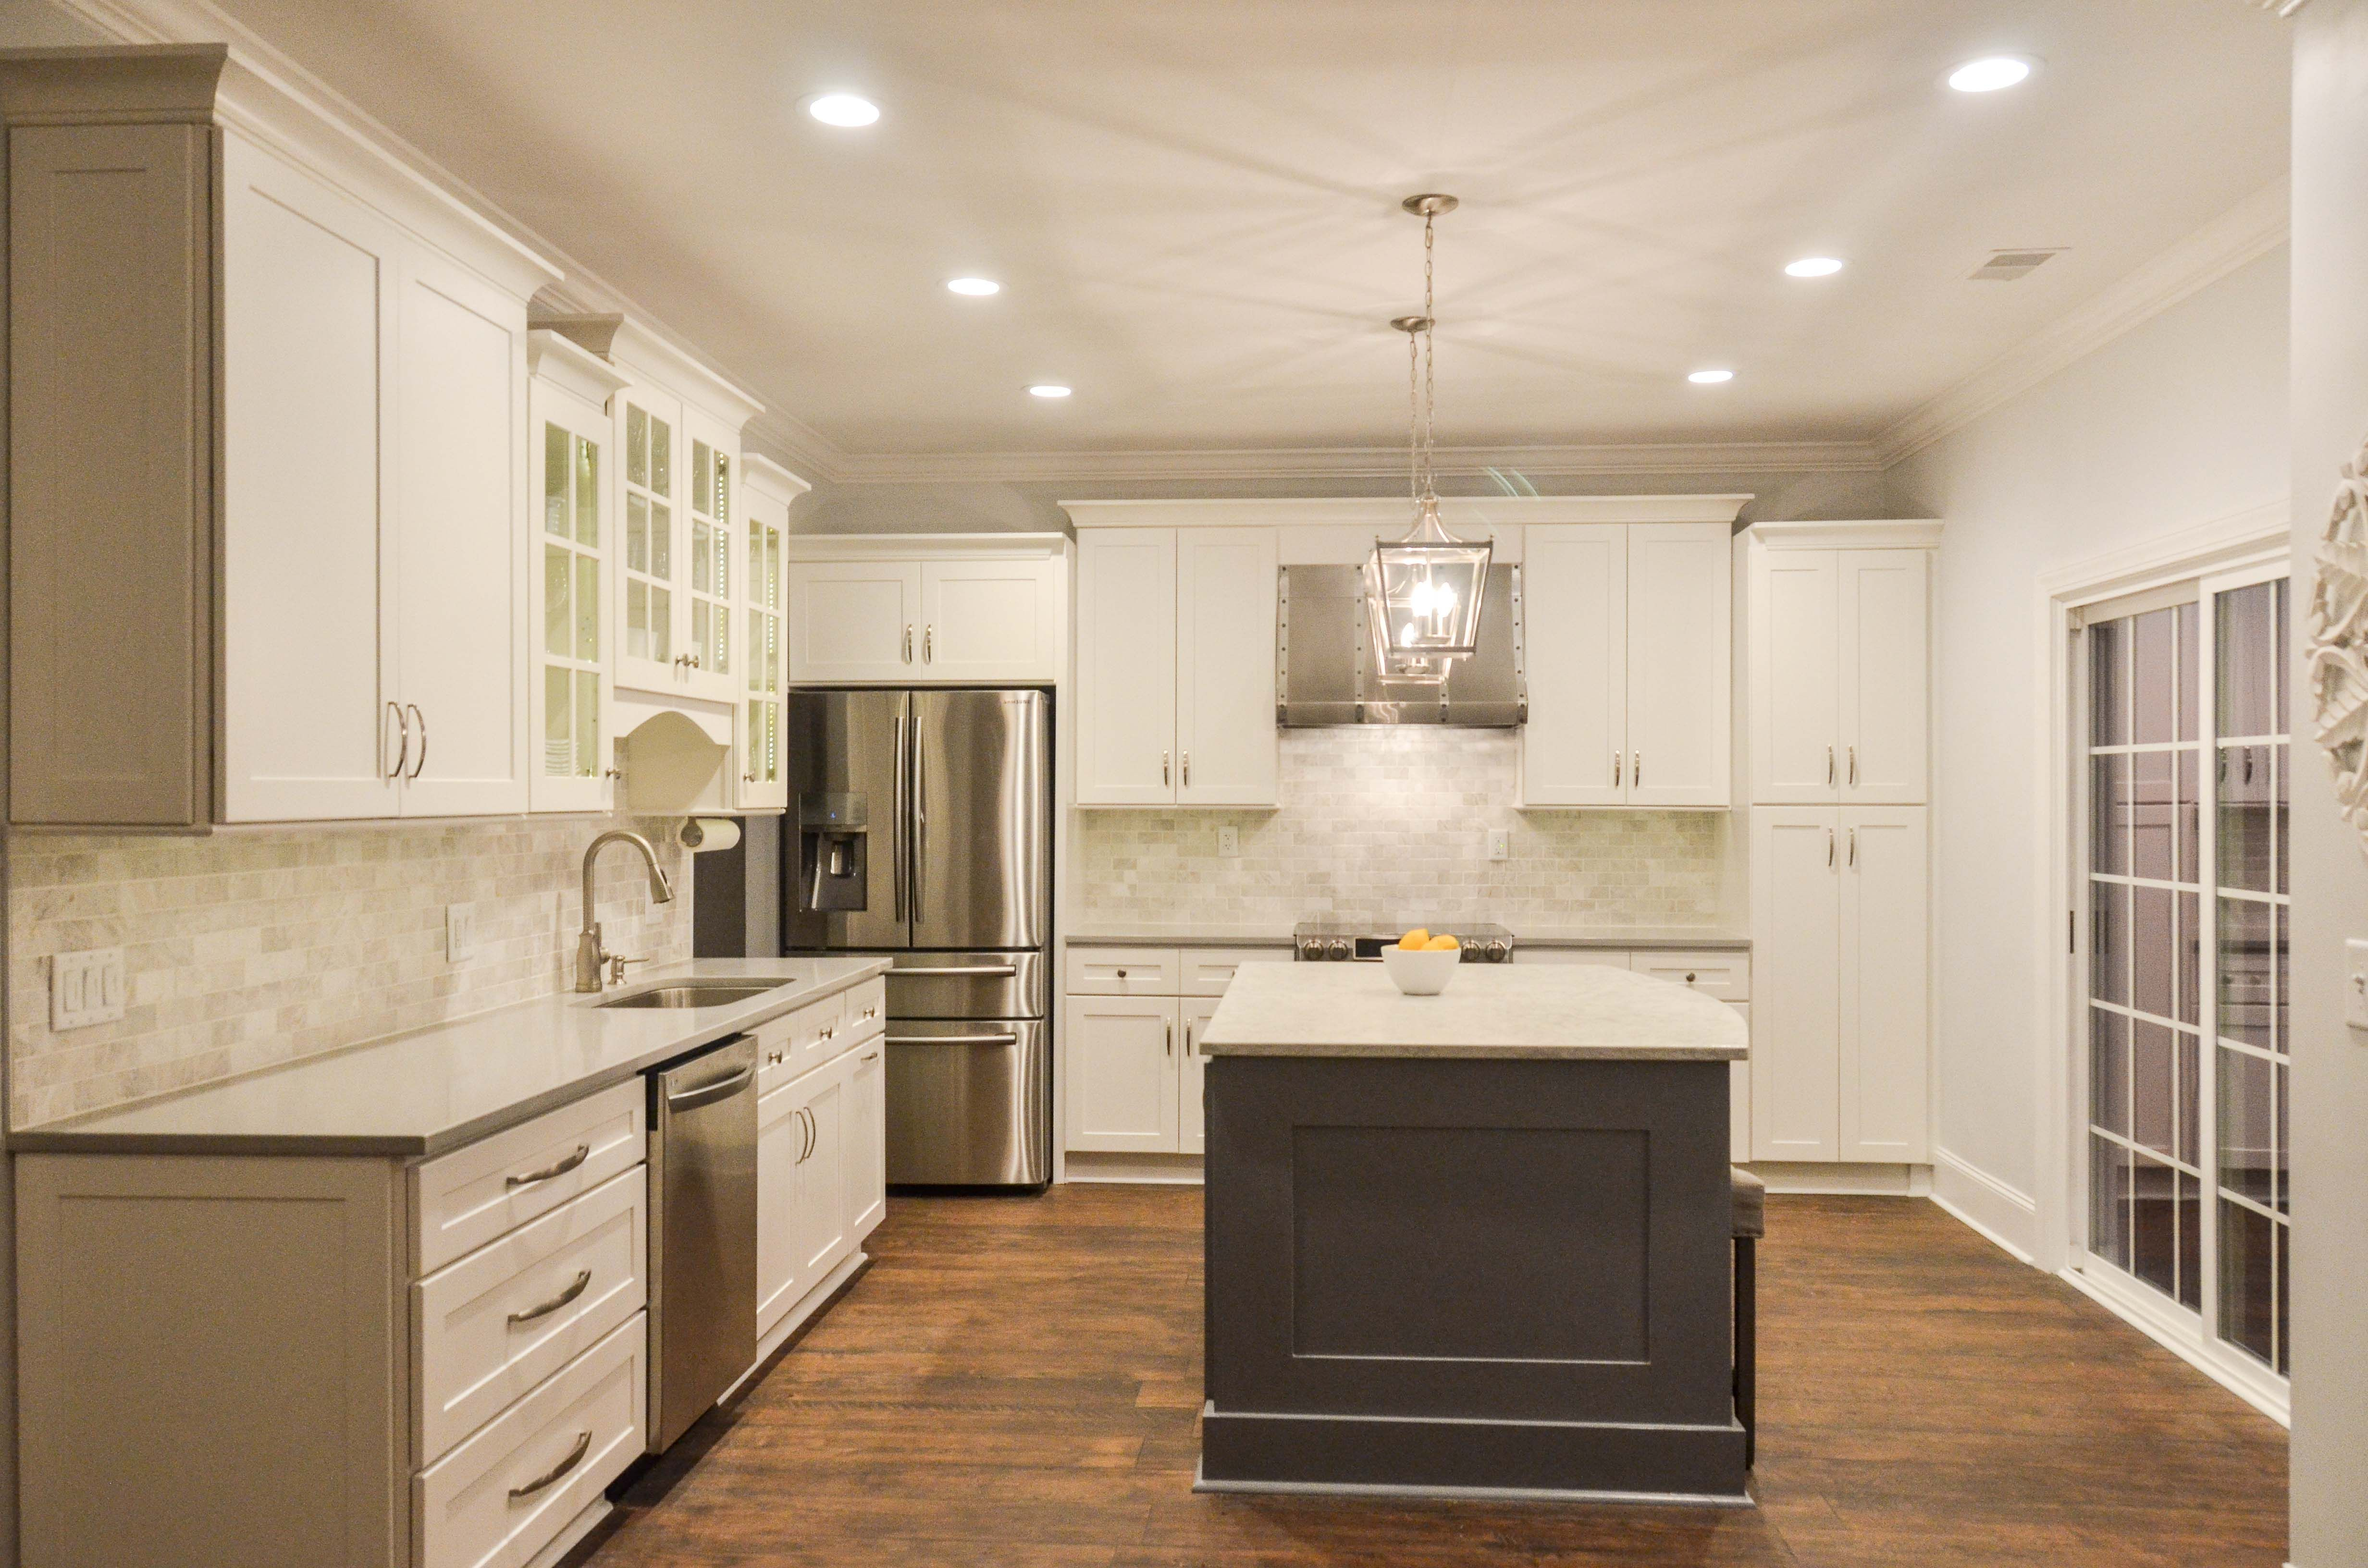 Kitchen remodel by Jessica G. of Columbia, SC. We planned ...